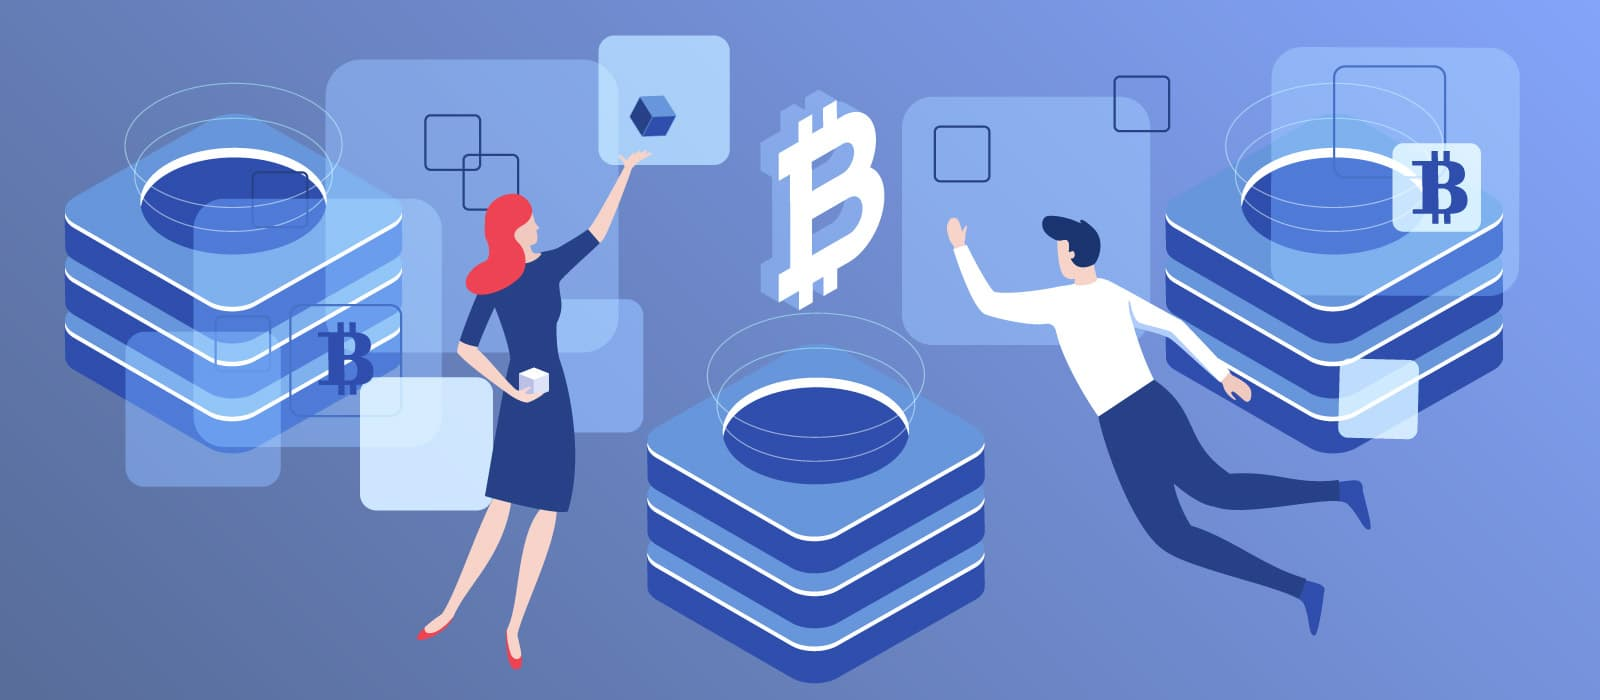 Two people surrounded by blocks and bitcoin icon